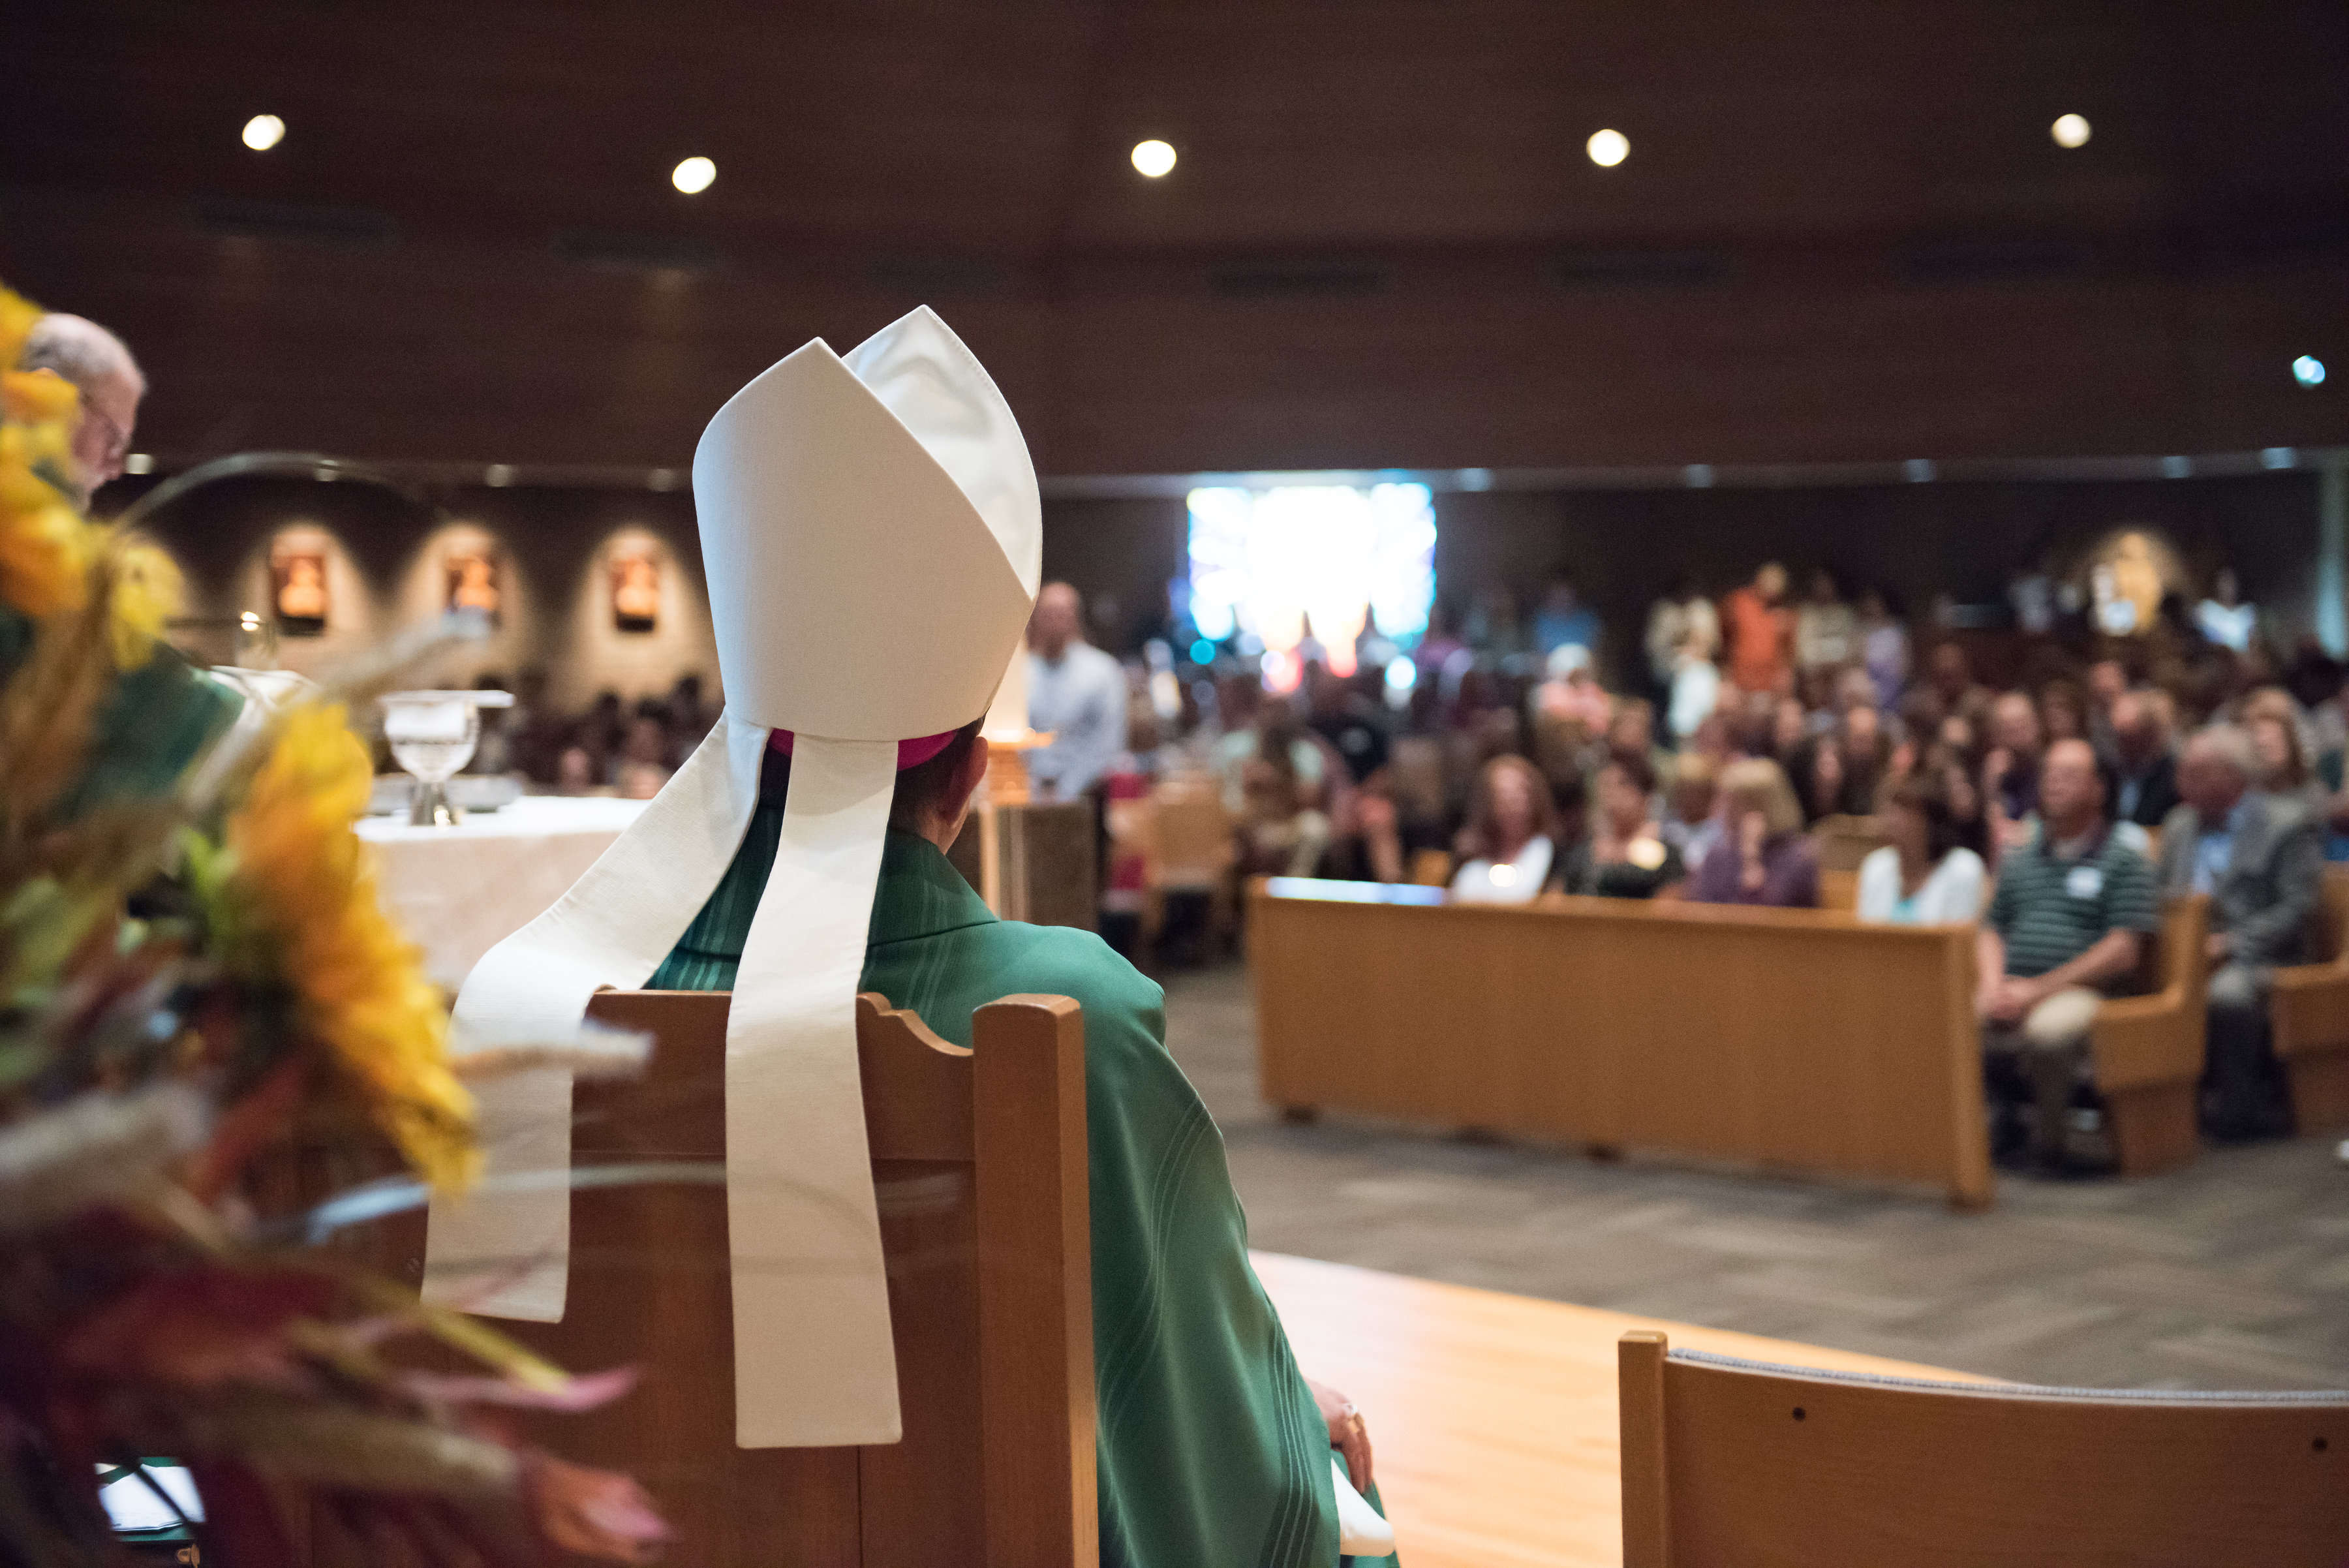 Bishop Walkowiak looks out on congregation during Father Damian's installation Mass